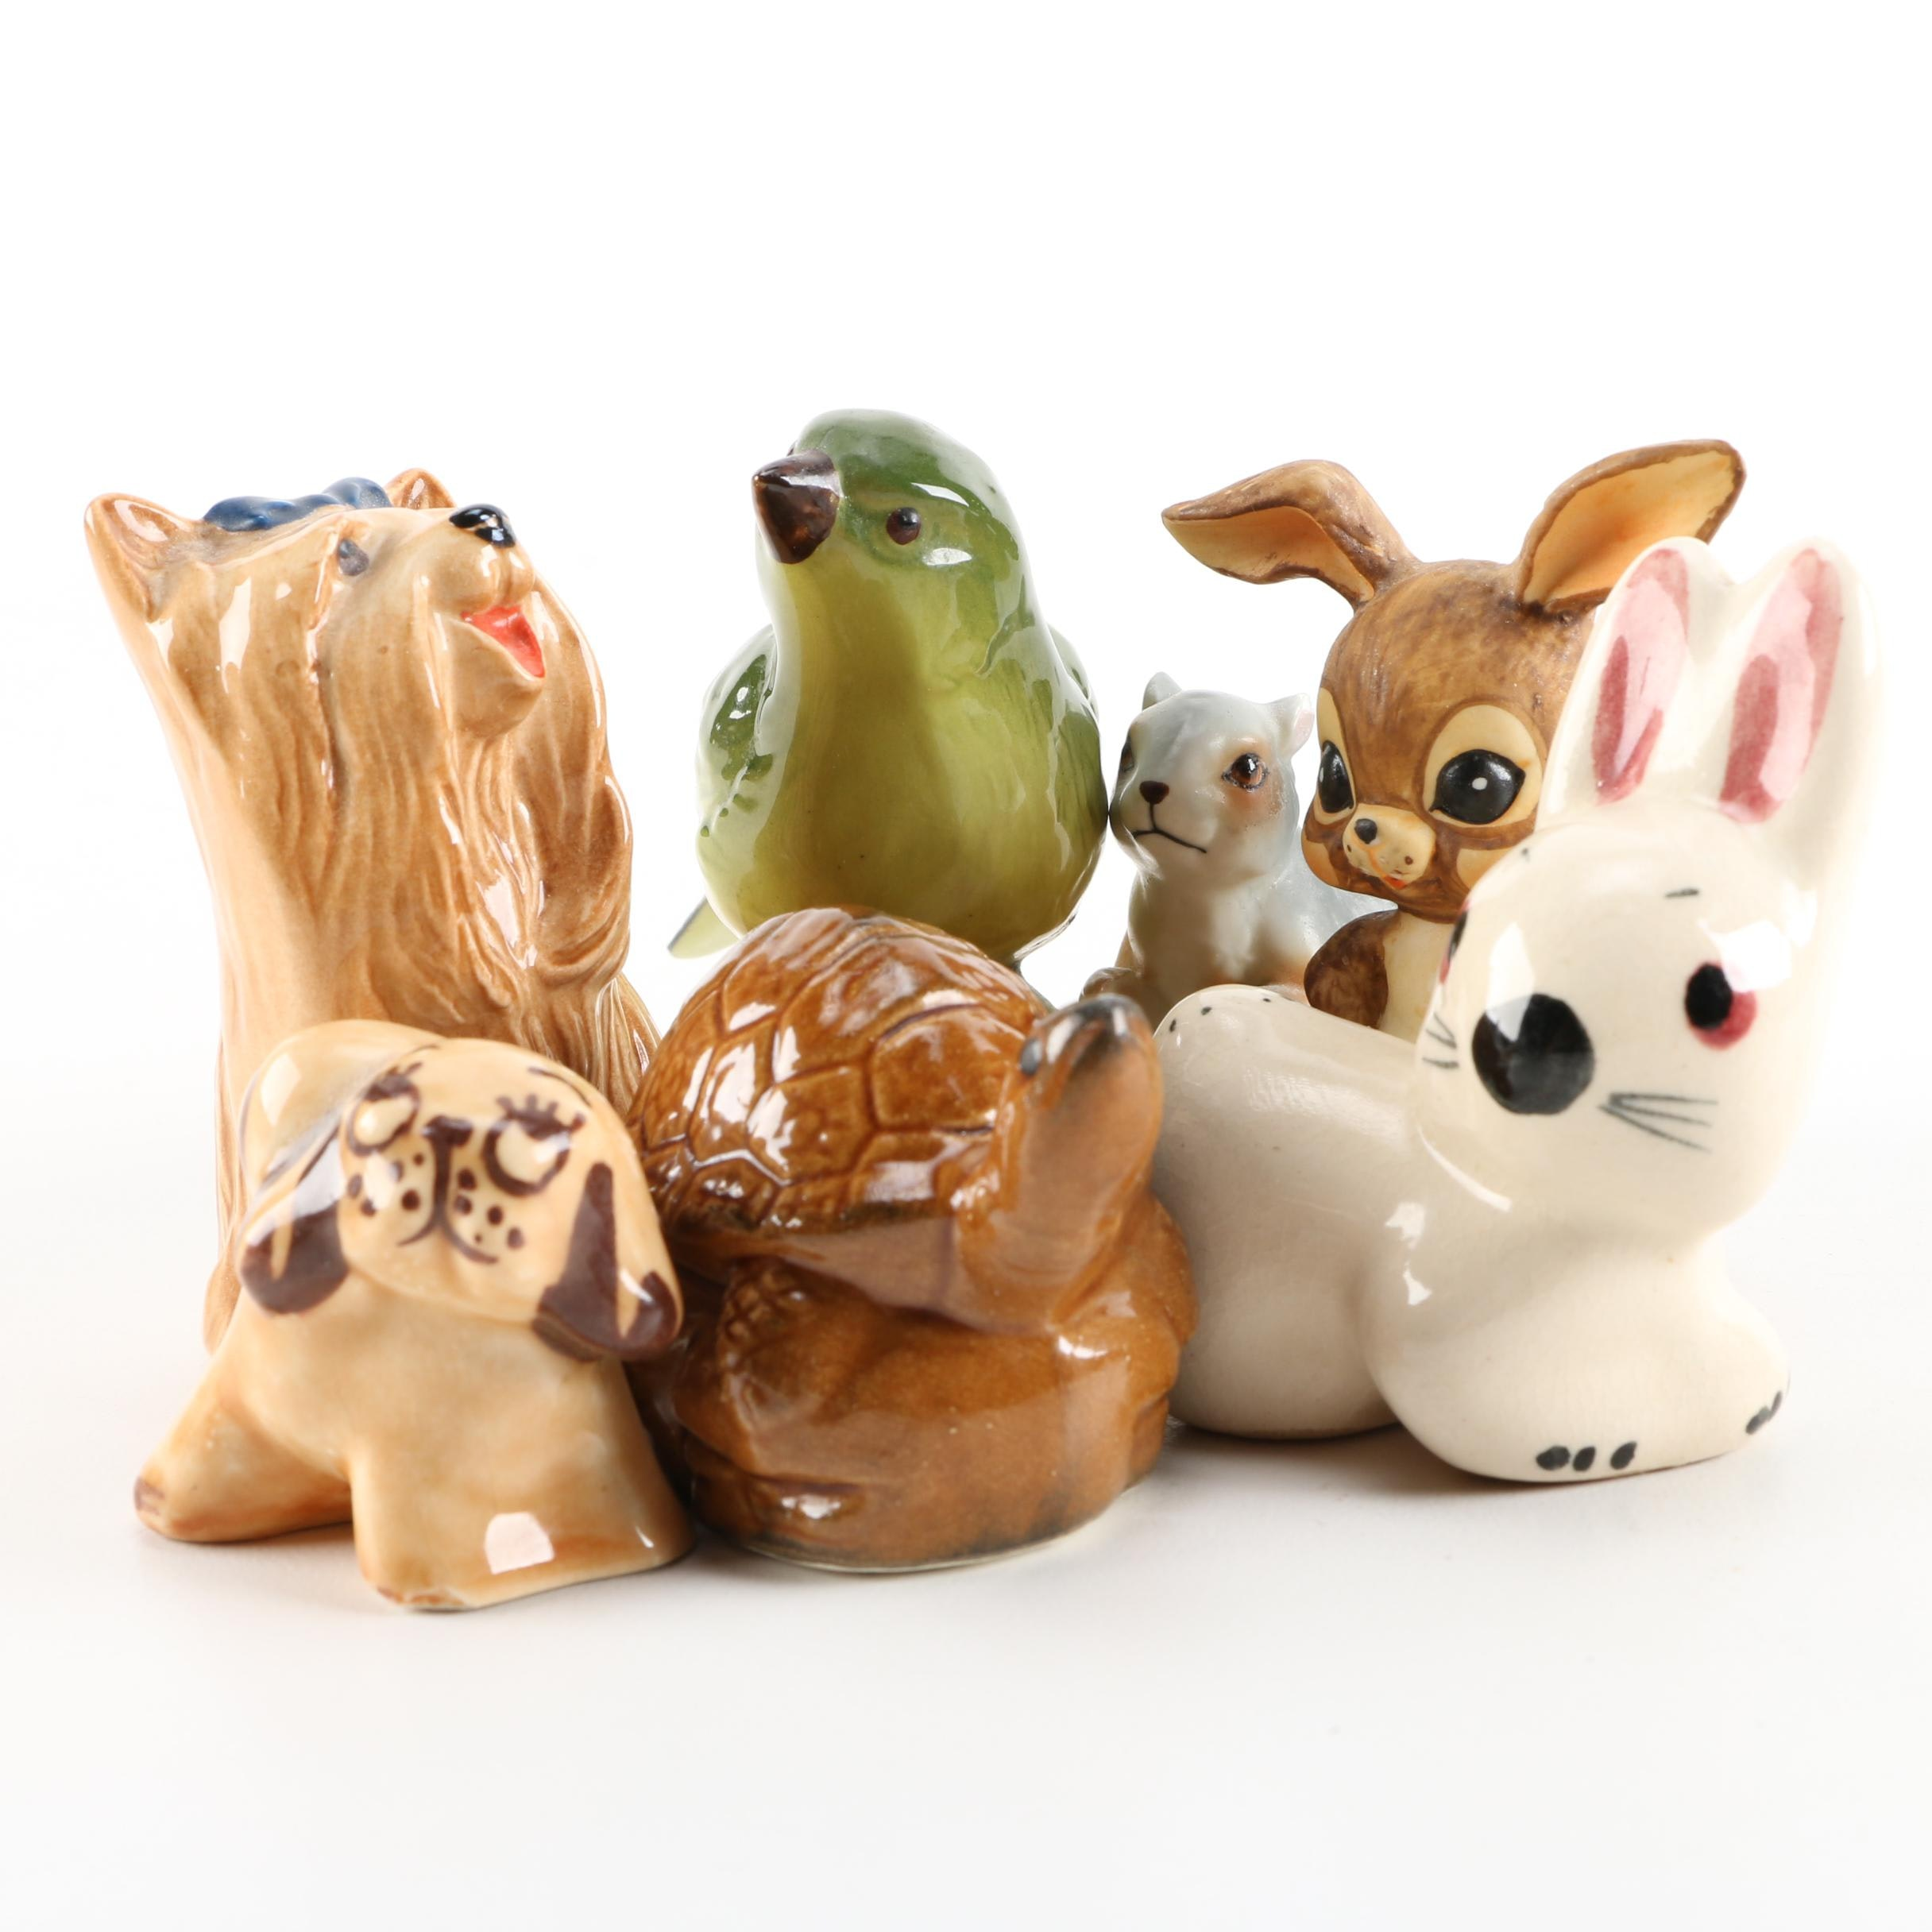 Collection of Ceramic Animal Figurines featuring Beswick